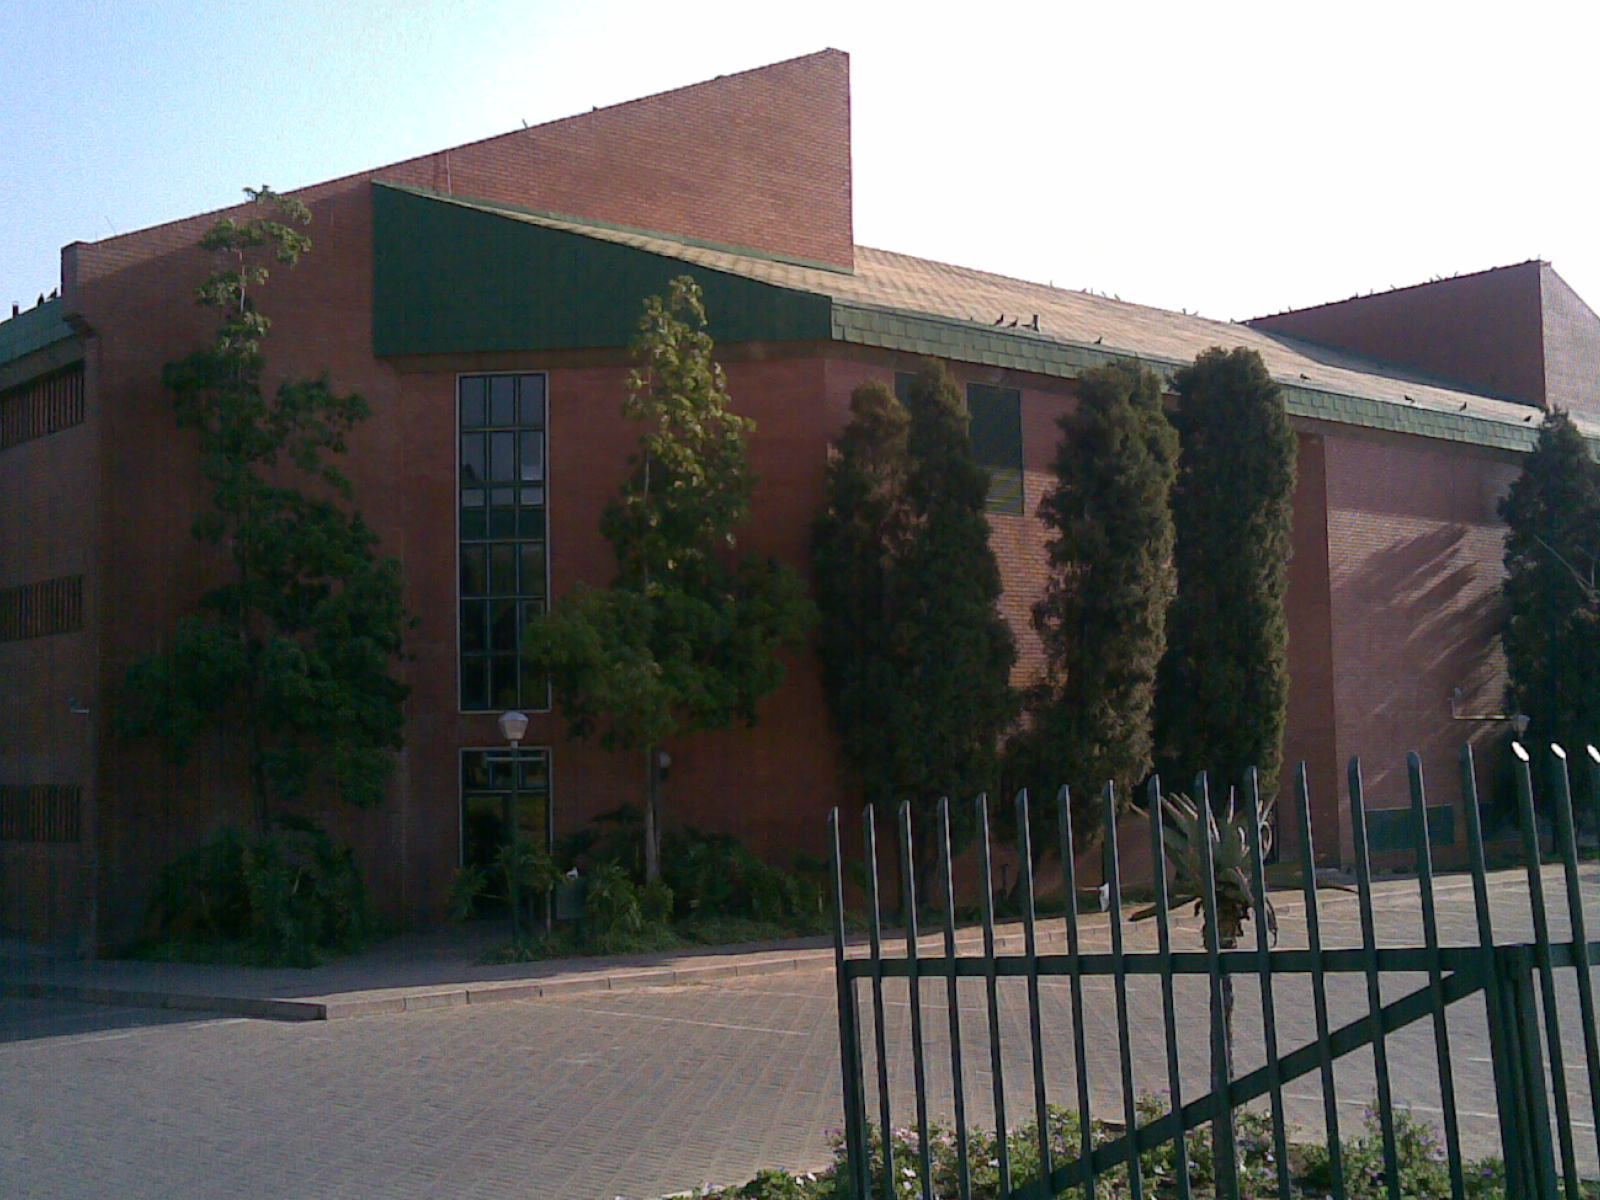 Eersterust Civic Centre